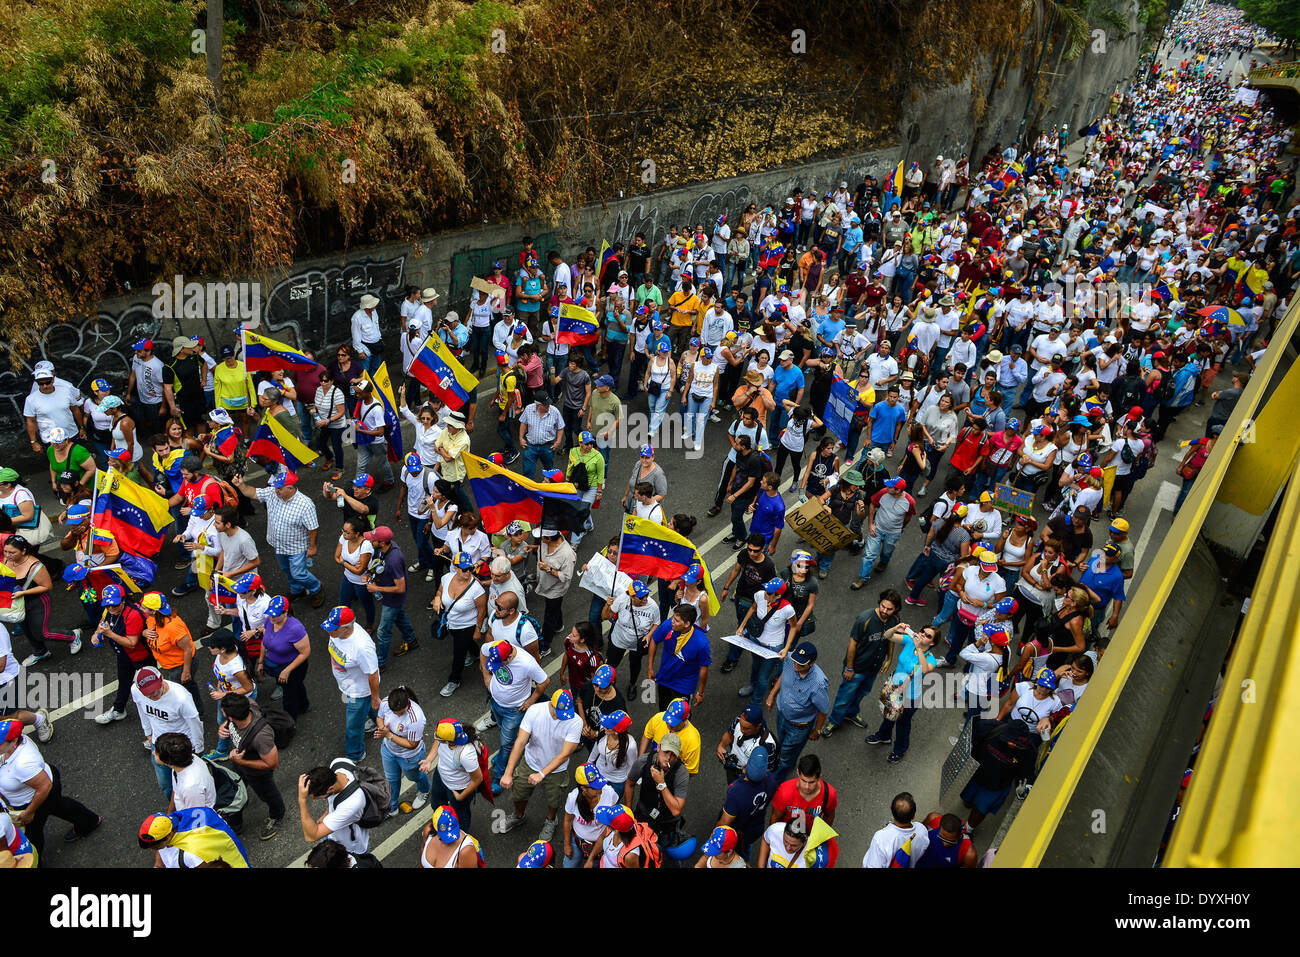 Caracas, Venezuela. 26th Apr, 2014. People participate during a march under the slogan 'The education is respected', at Chacao township, in Caracas, Venezuela, on April 26, 2014. © Carlos Becerra/Xinhua/Alamy Live News - Stock Image